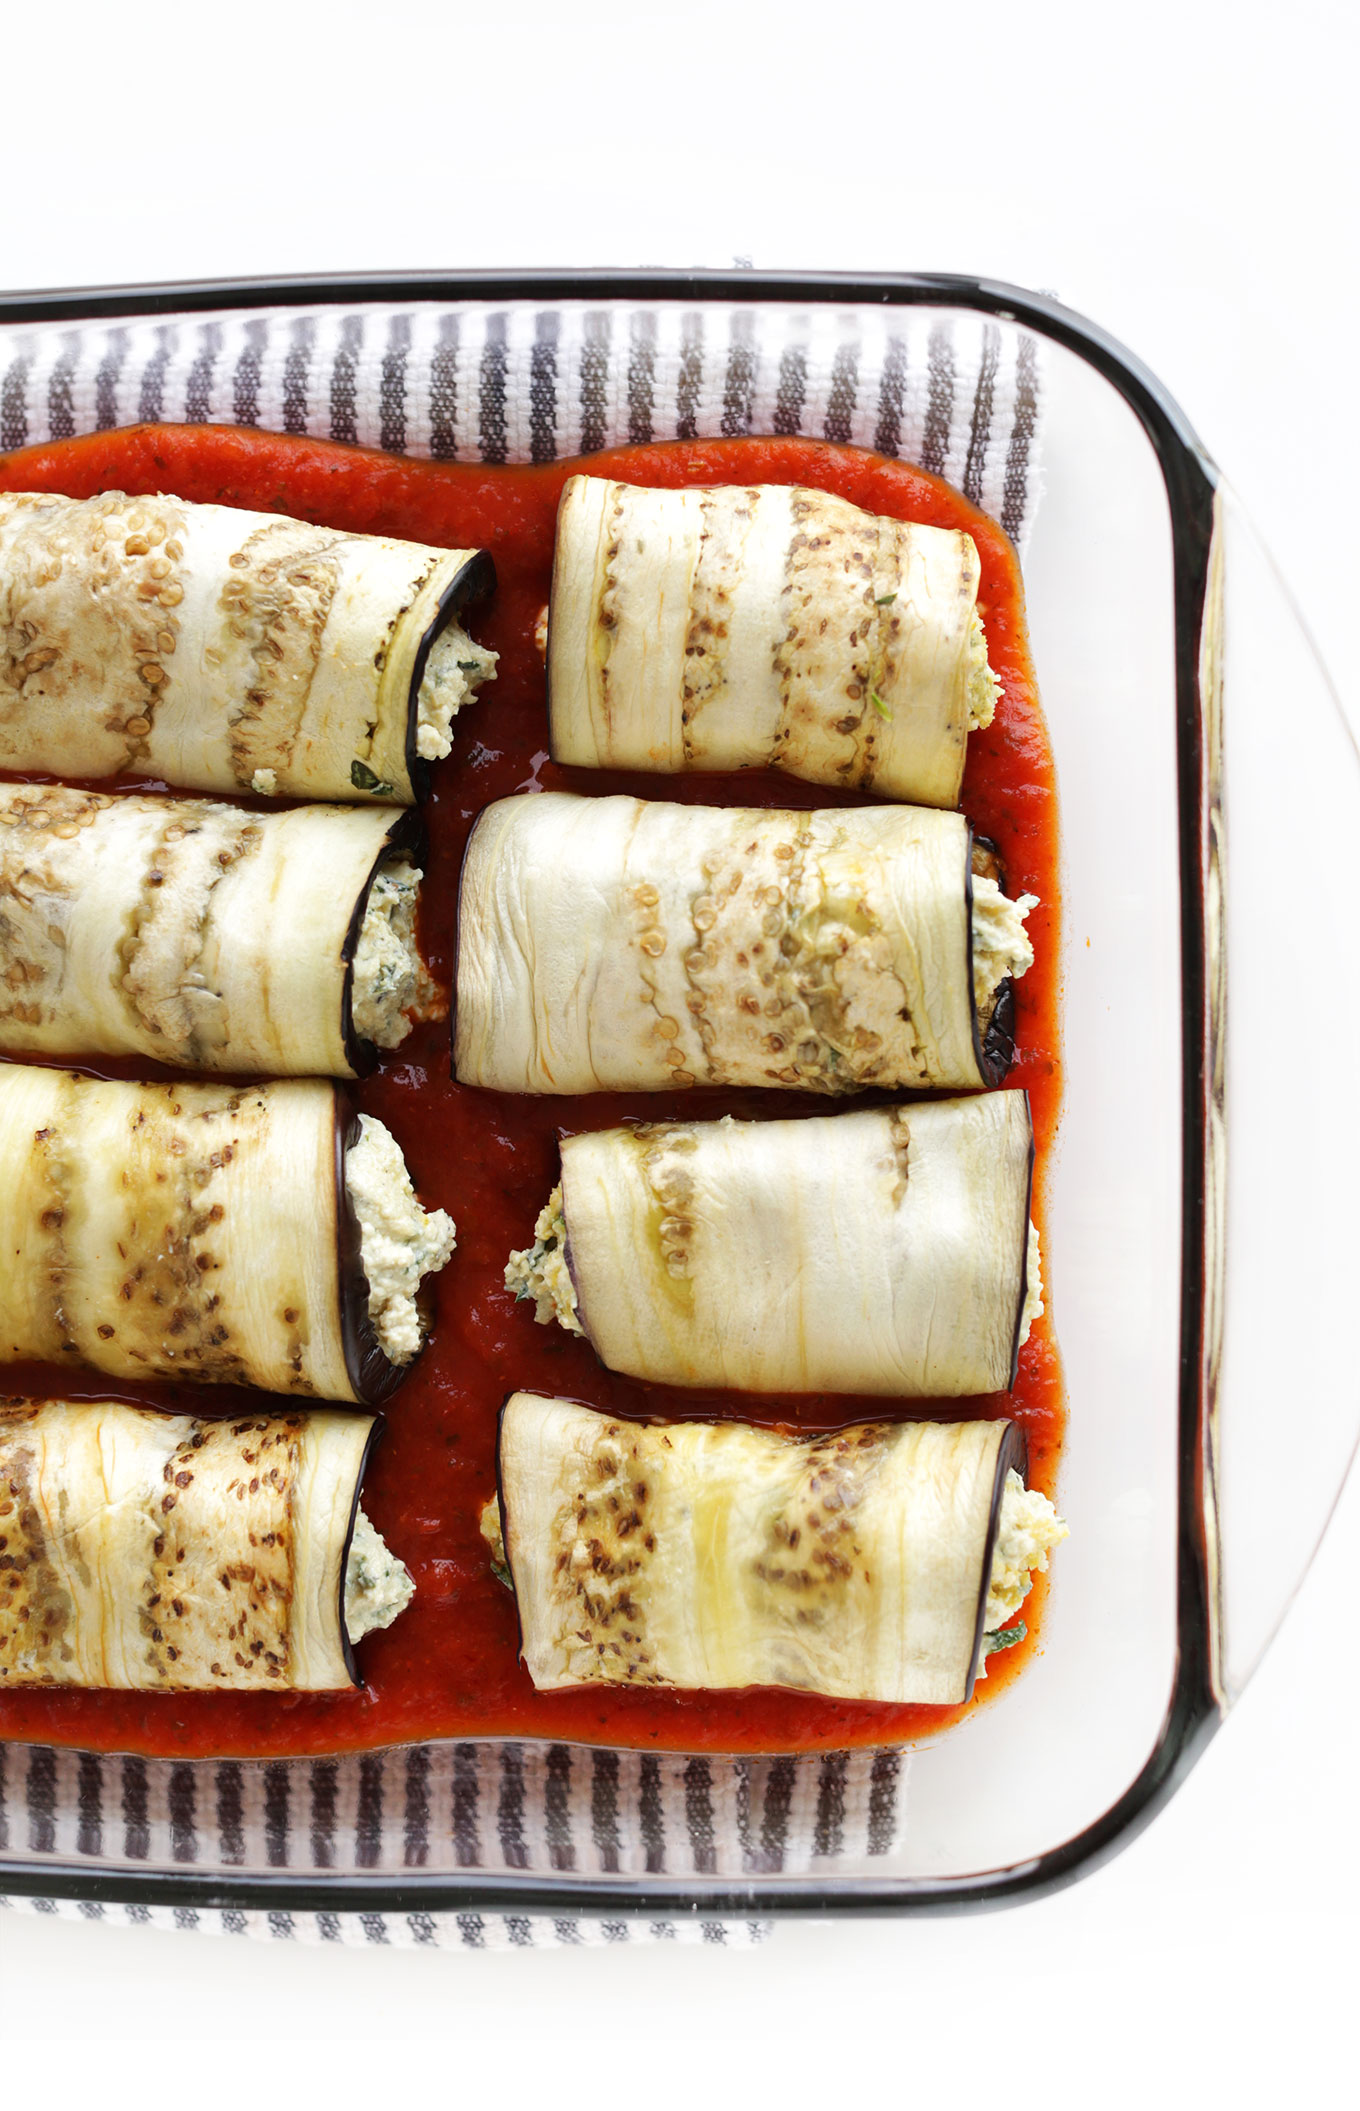 Baking pan with vegan Eggplant Lasagna Roll-Ups resting in marinara sauce